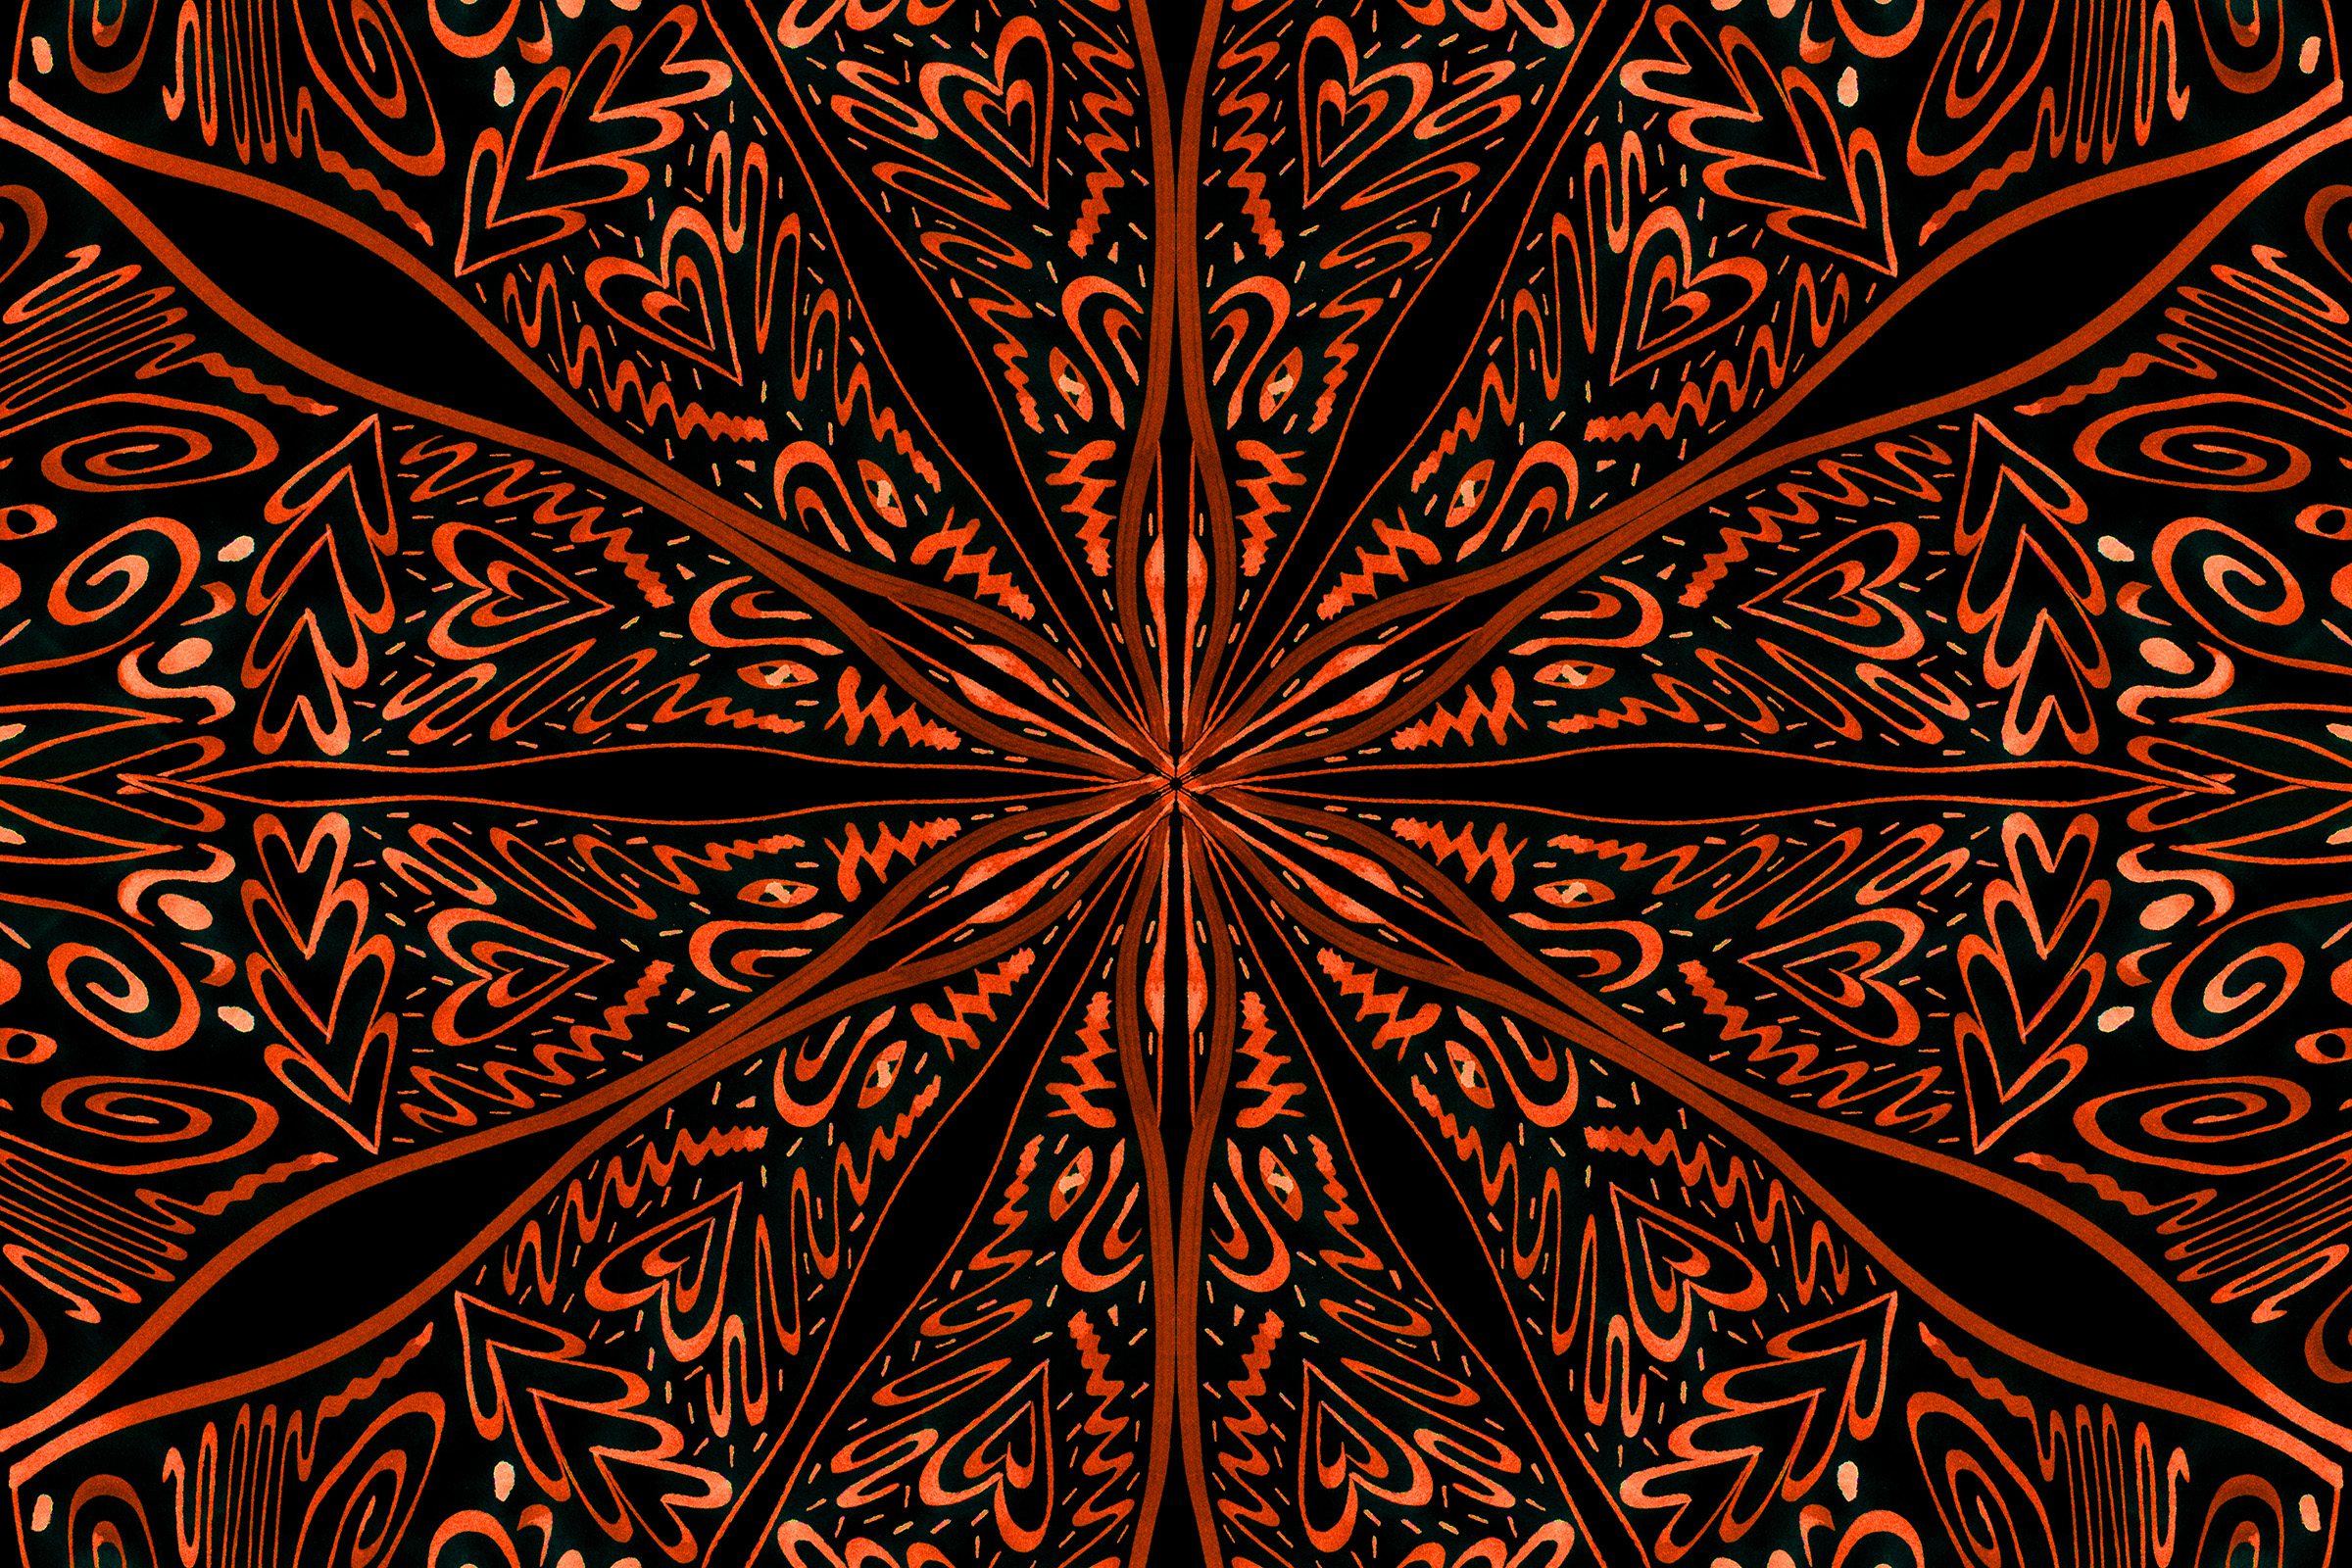 Image Result For Psychedelic Hd Wallpapers